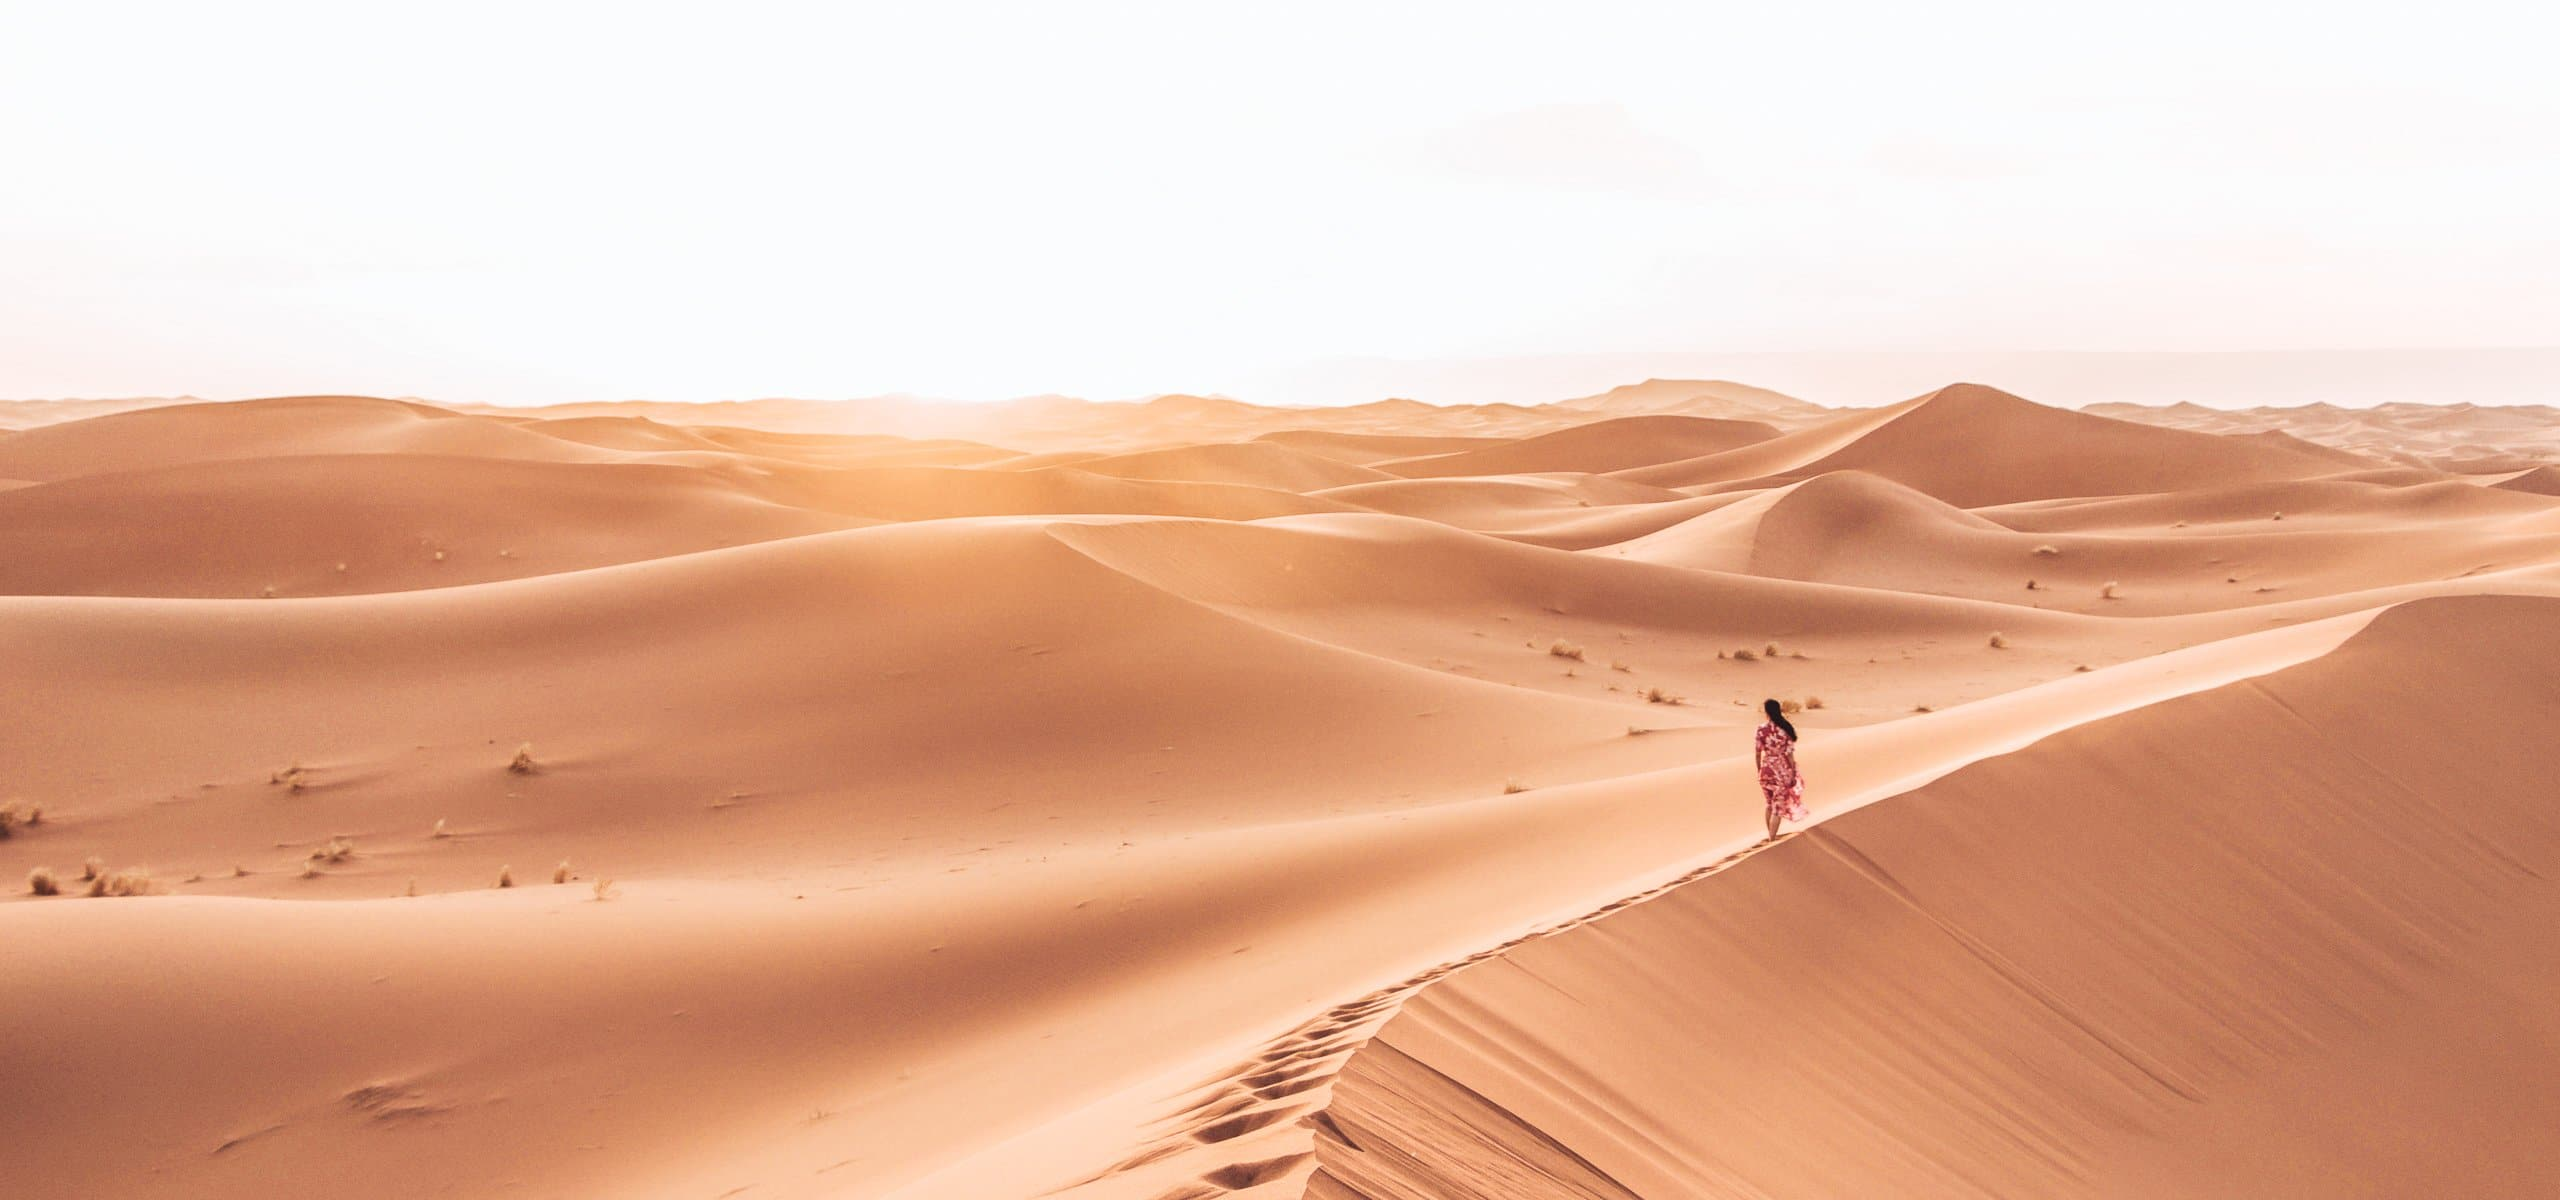 Camping Under The Stars: A Night In The Sahara Desert